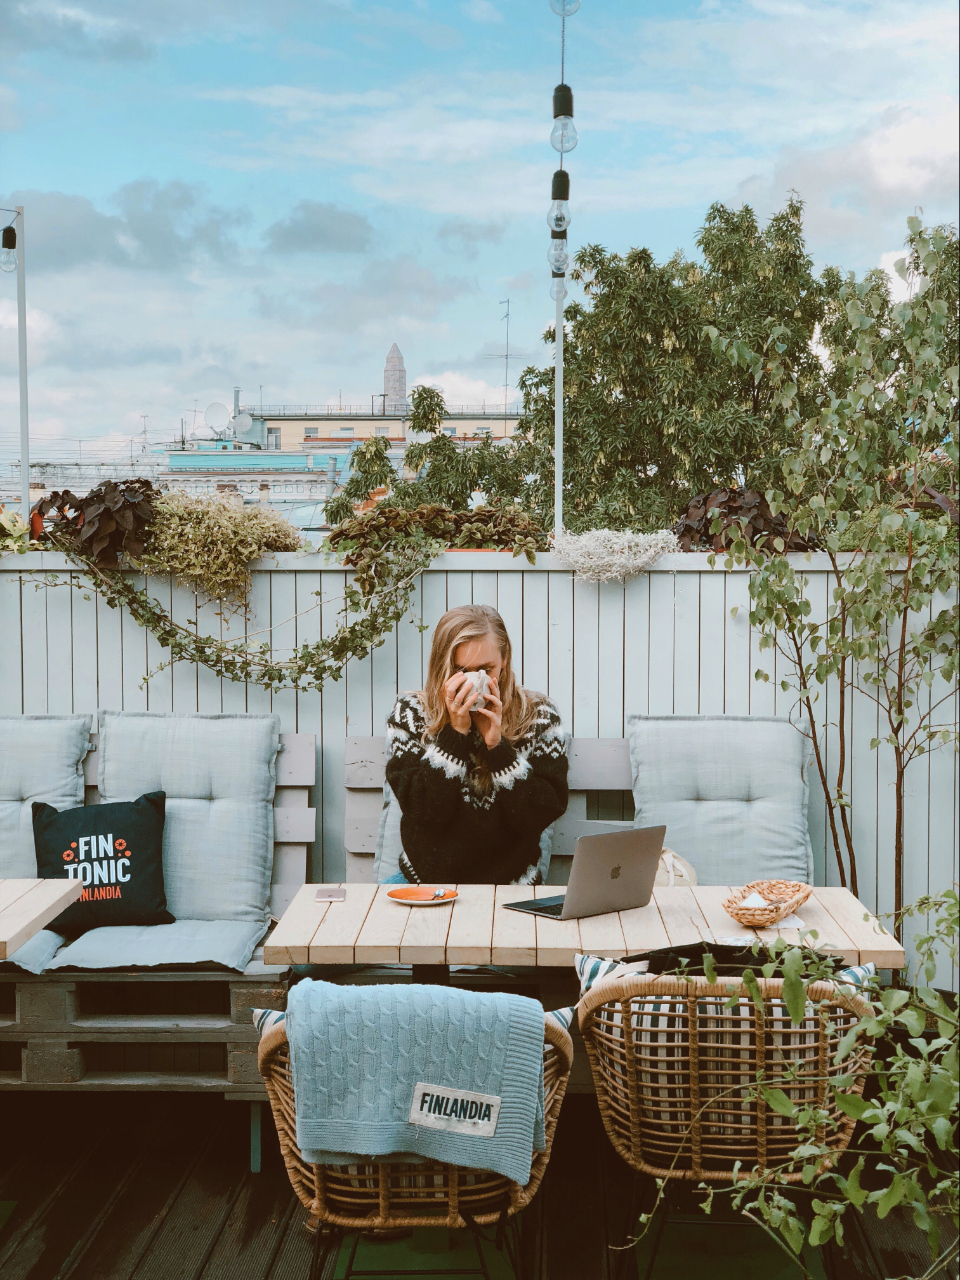 woman sipping tea seat sit cafe coffee drink food work office remote laptop blanket outside